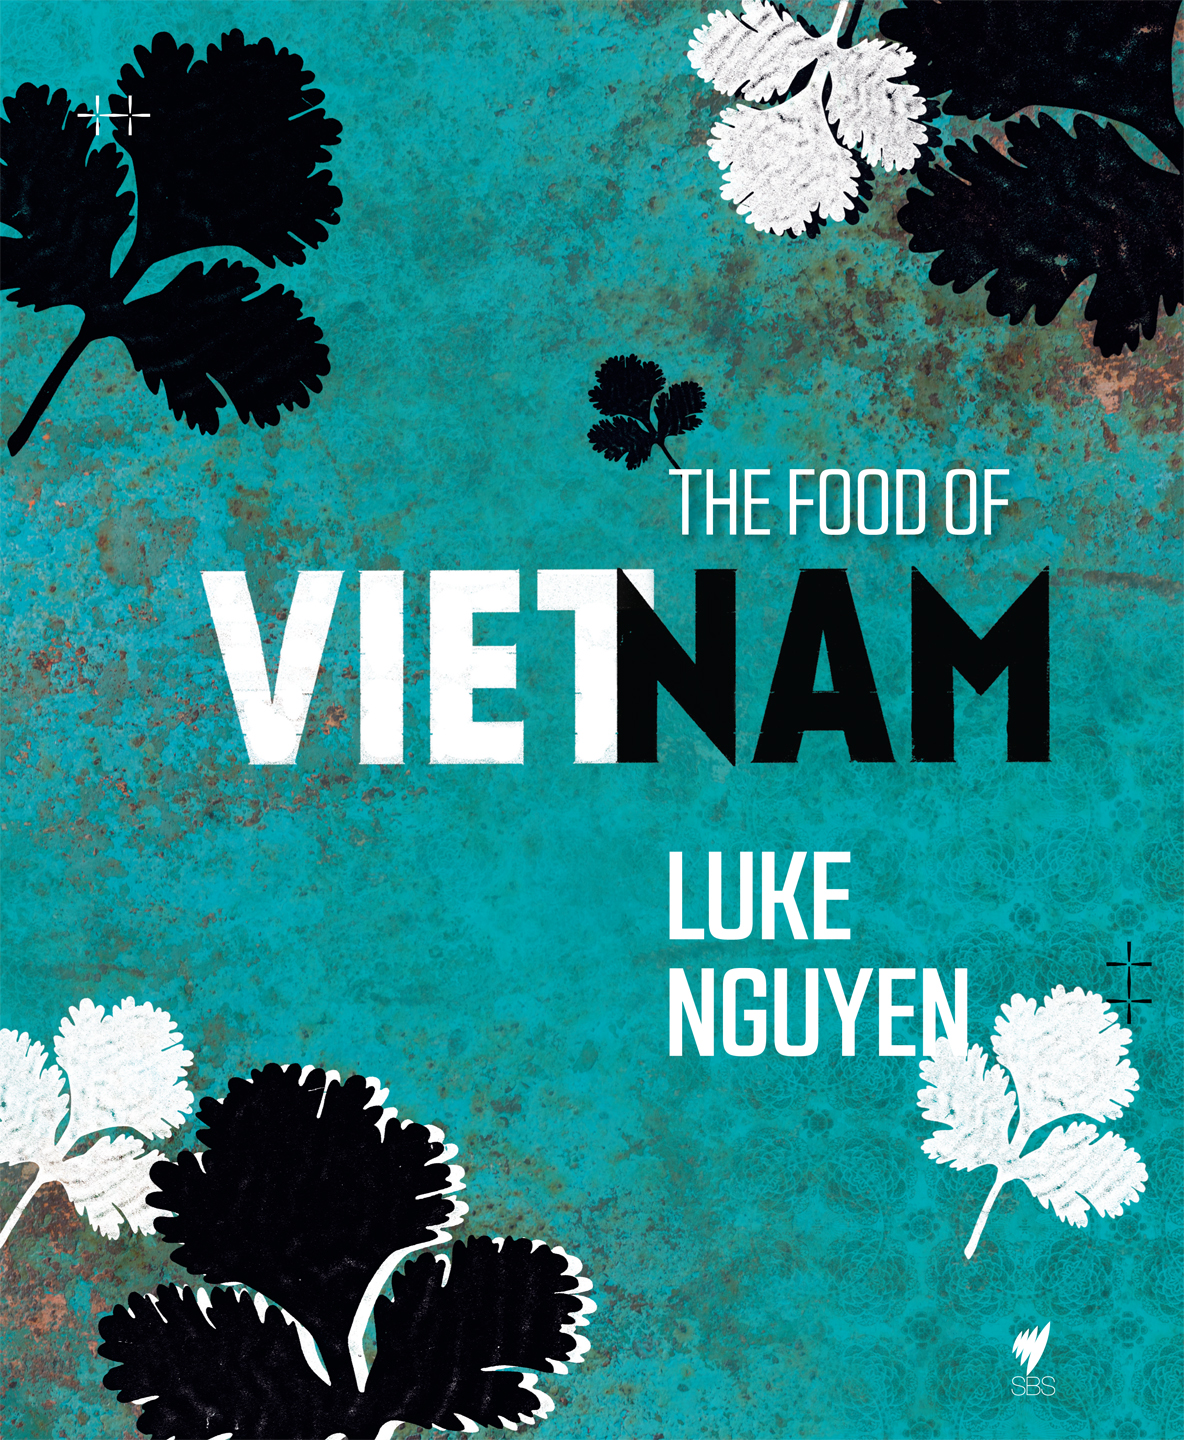 Food of Vietnam, The